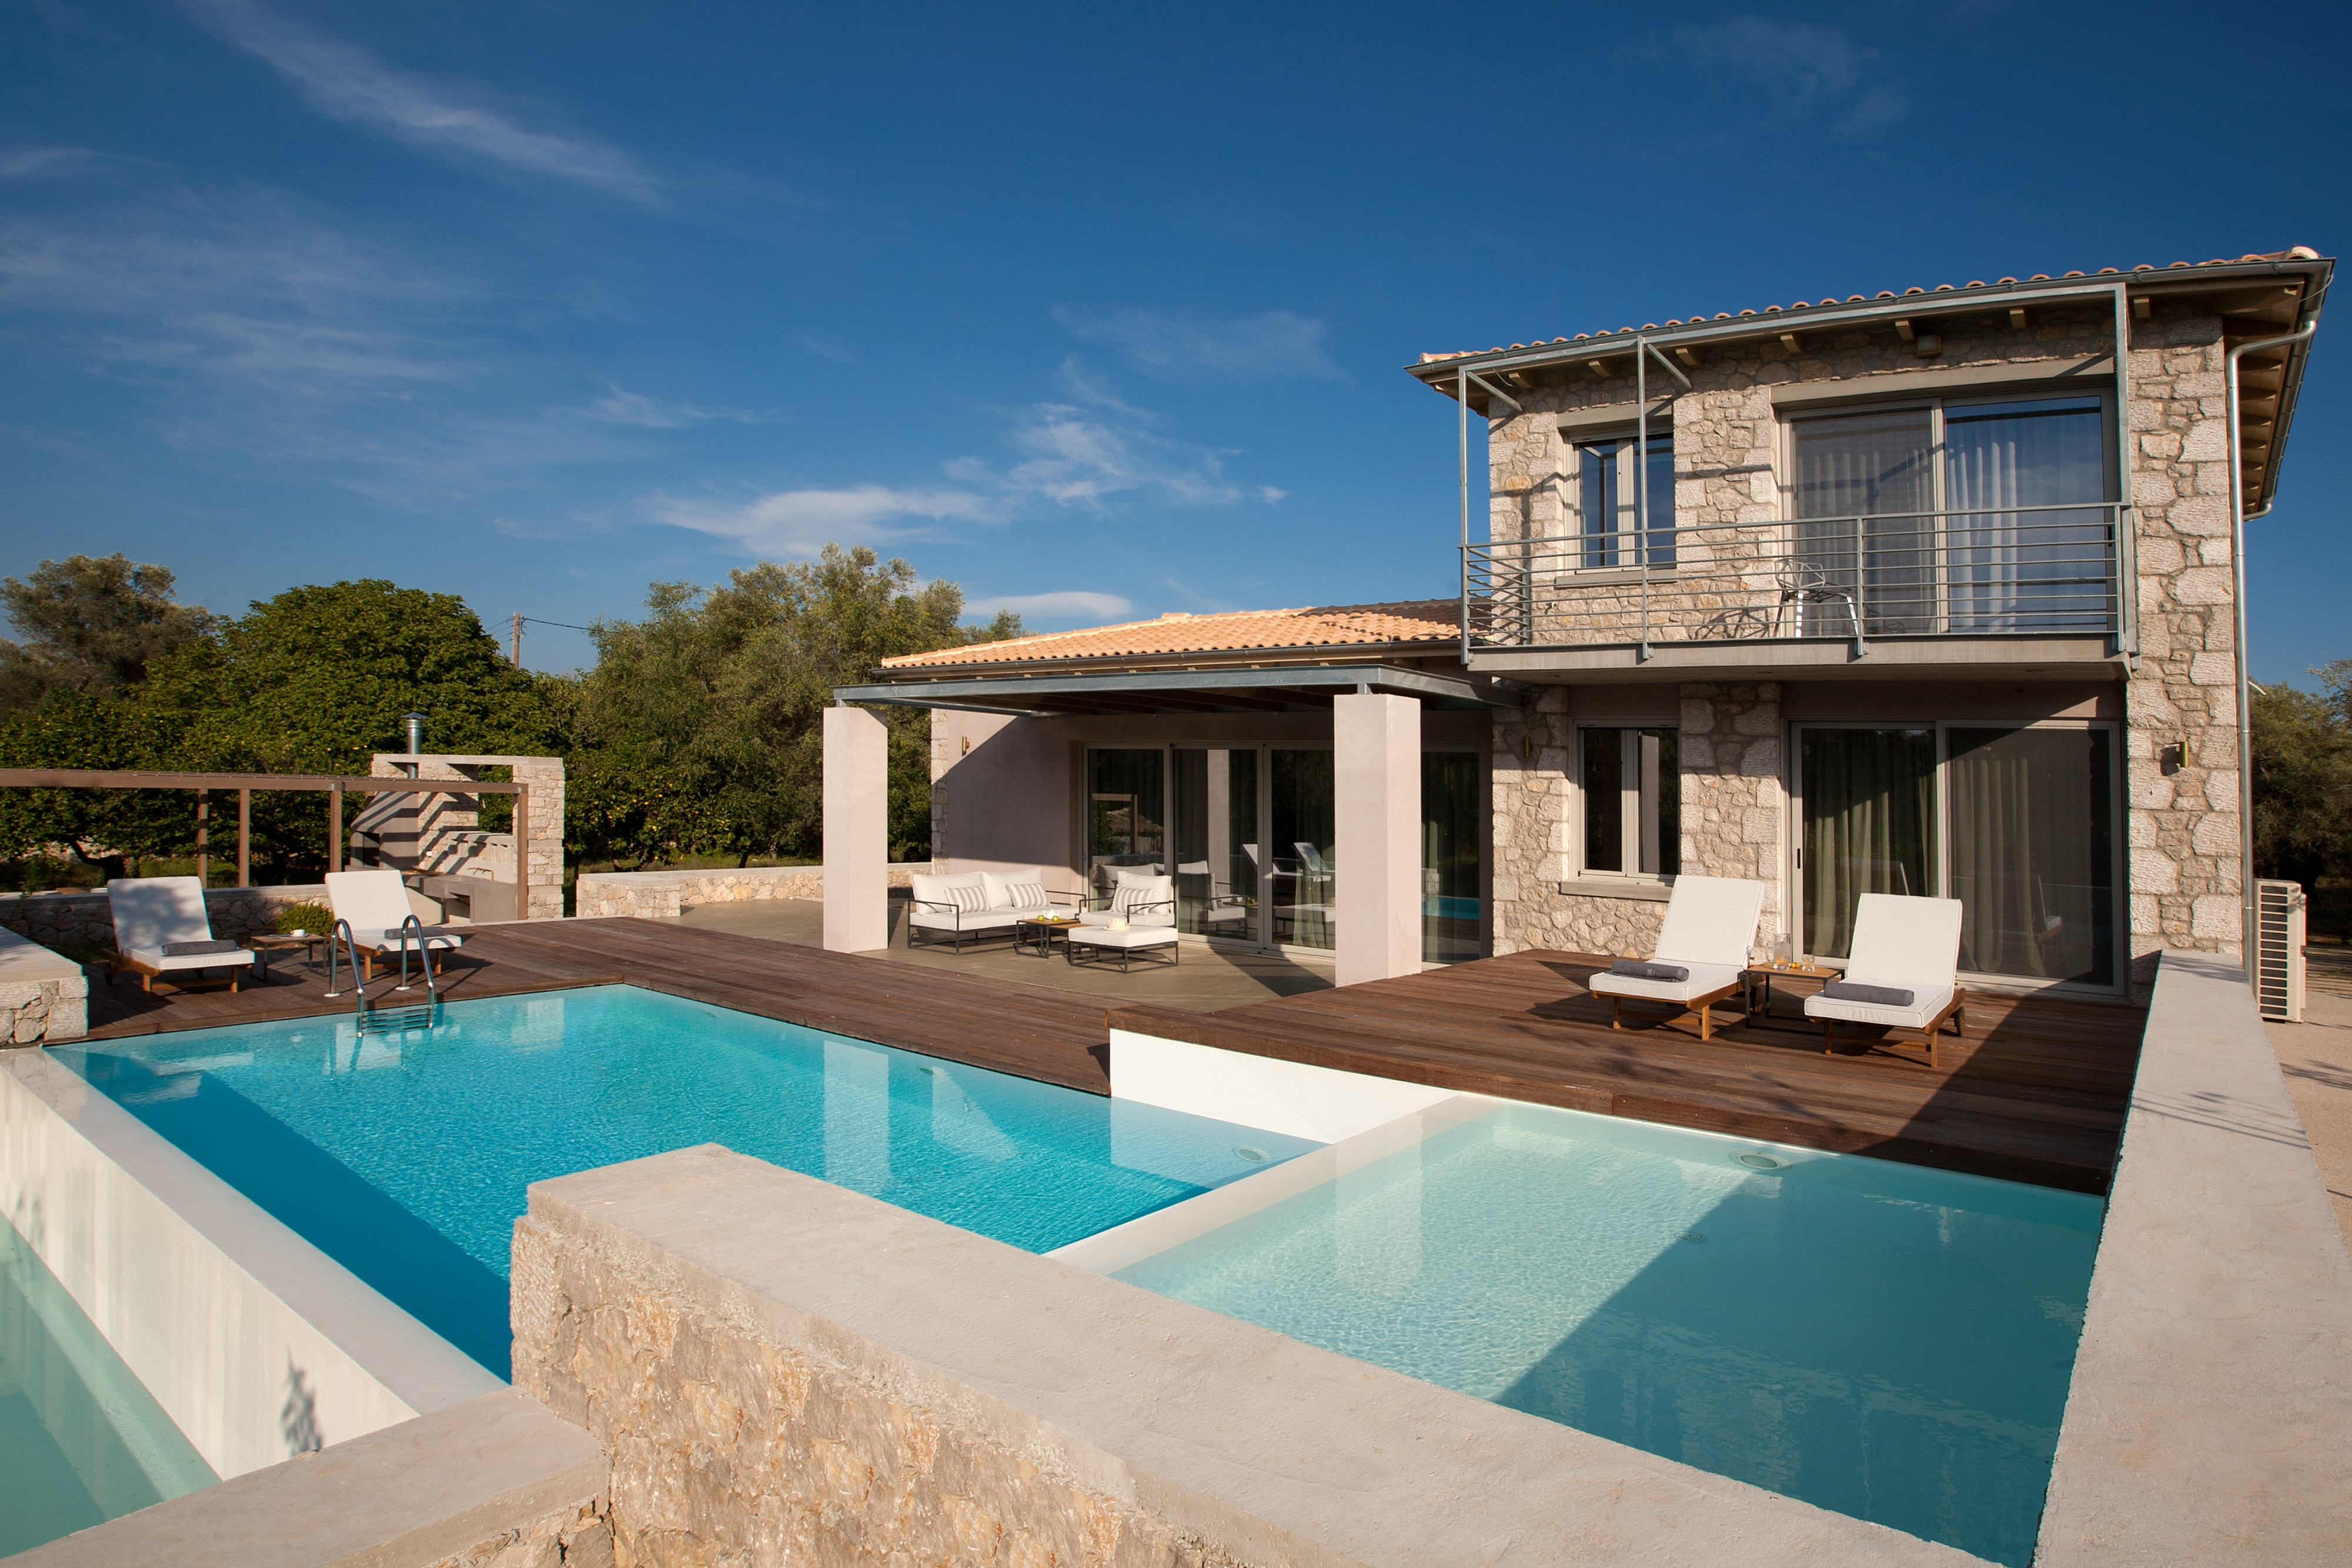 Property Image 1 - Elegant villa close to the beach with private pool